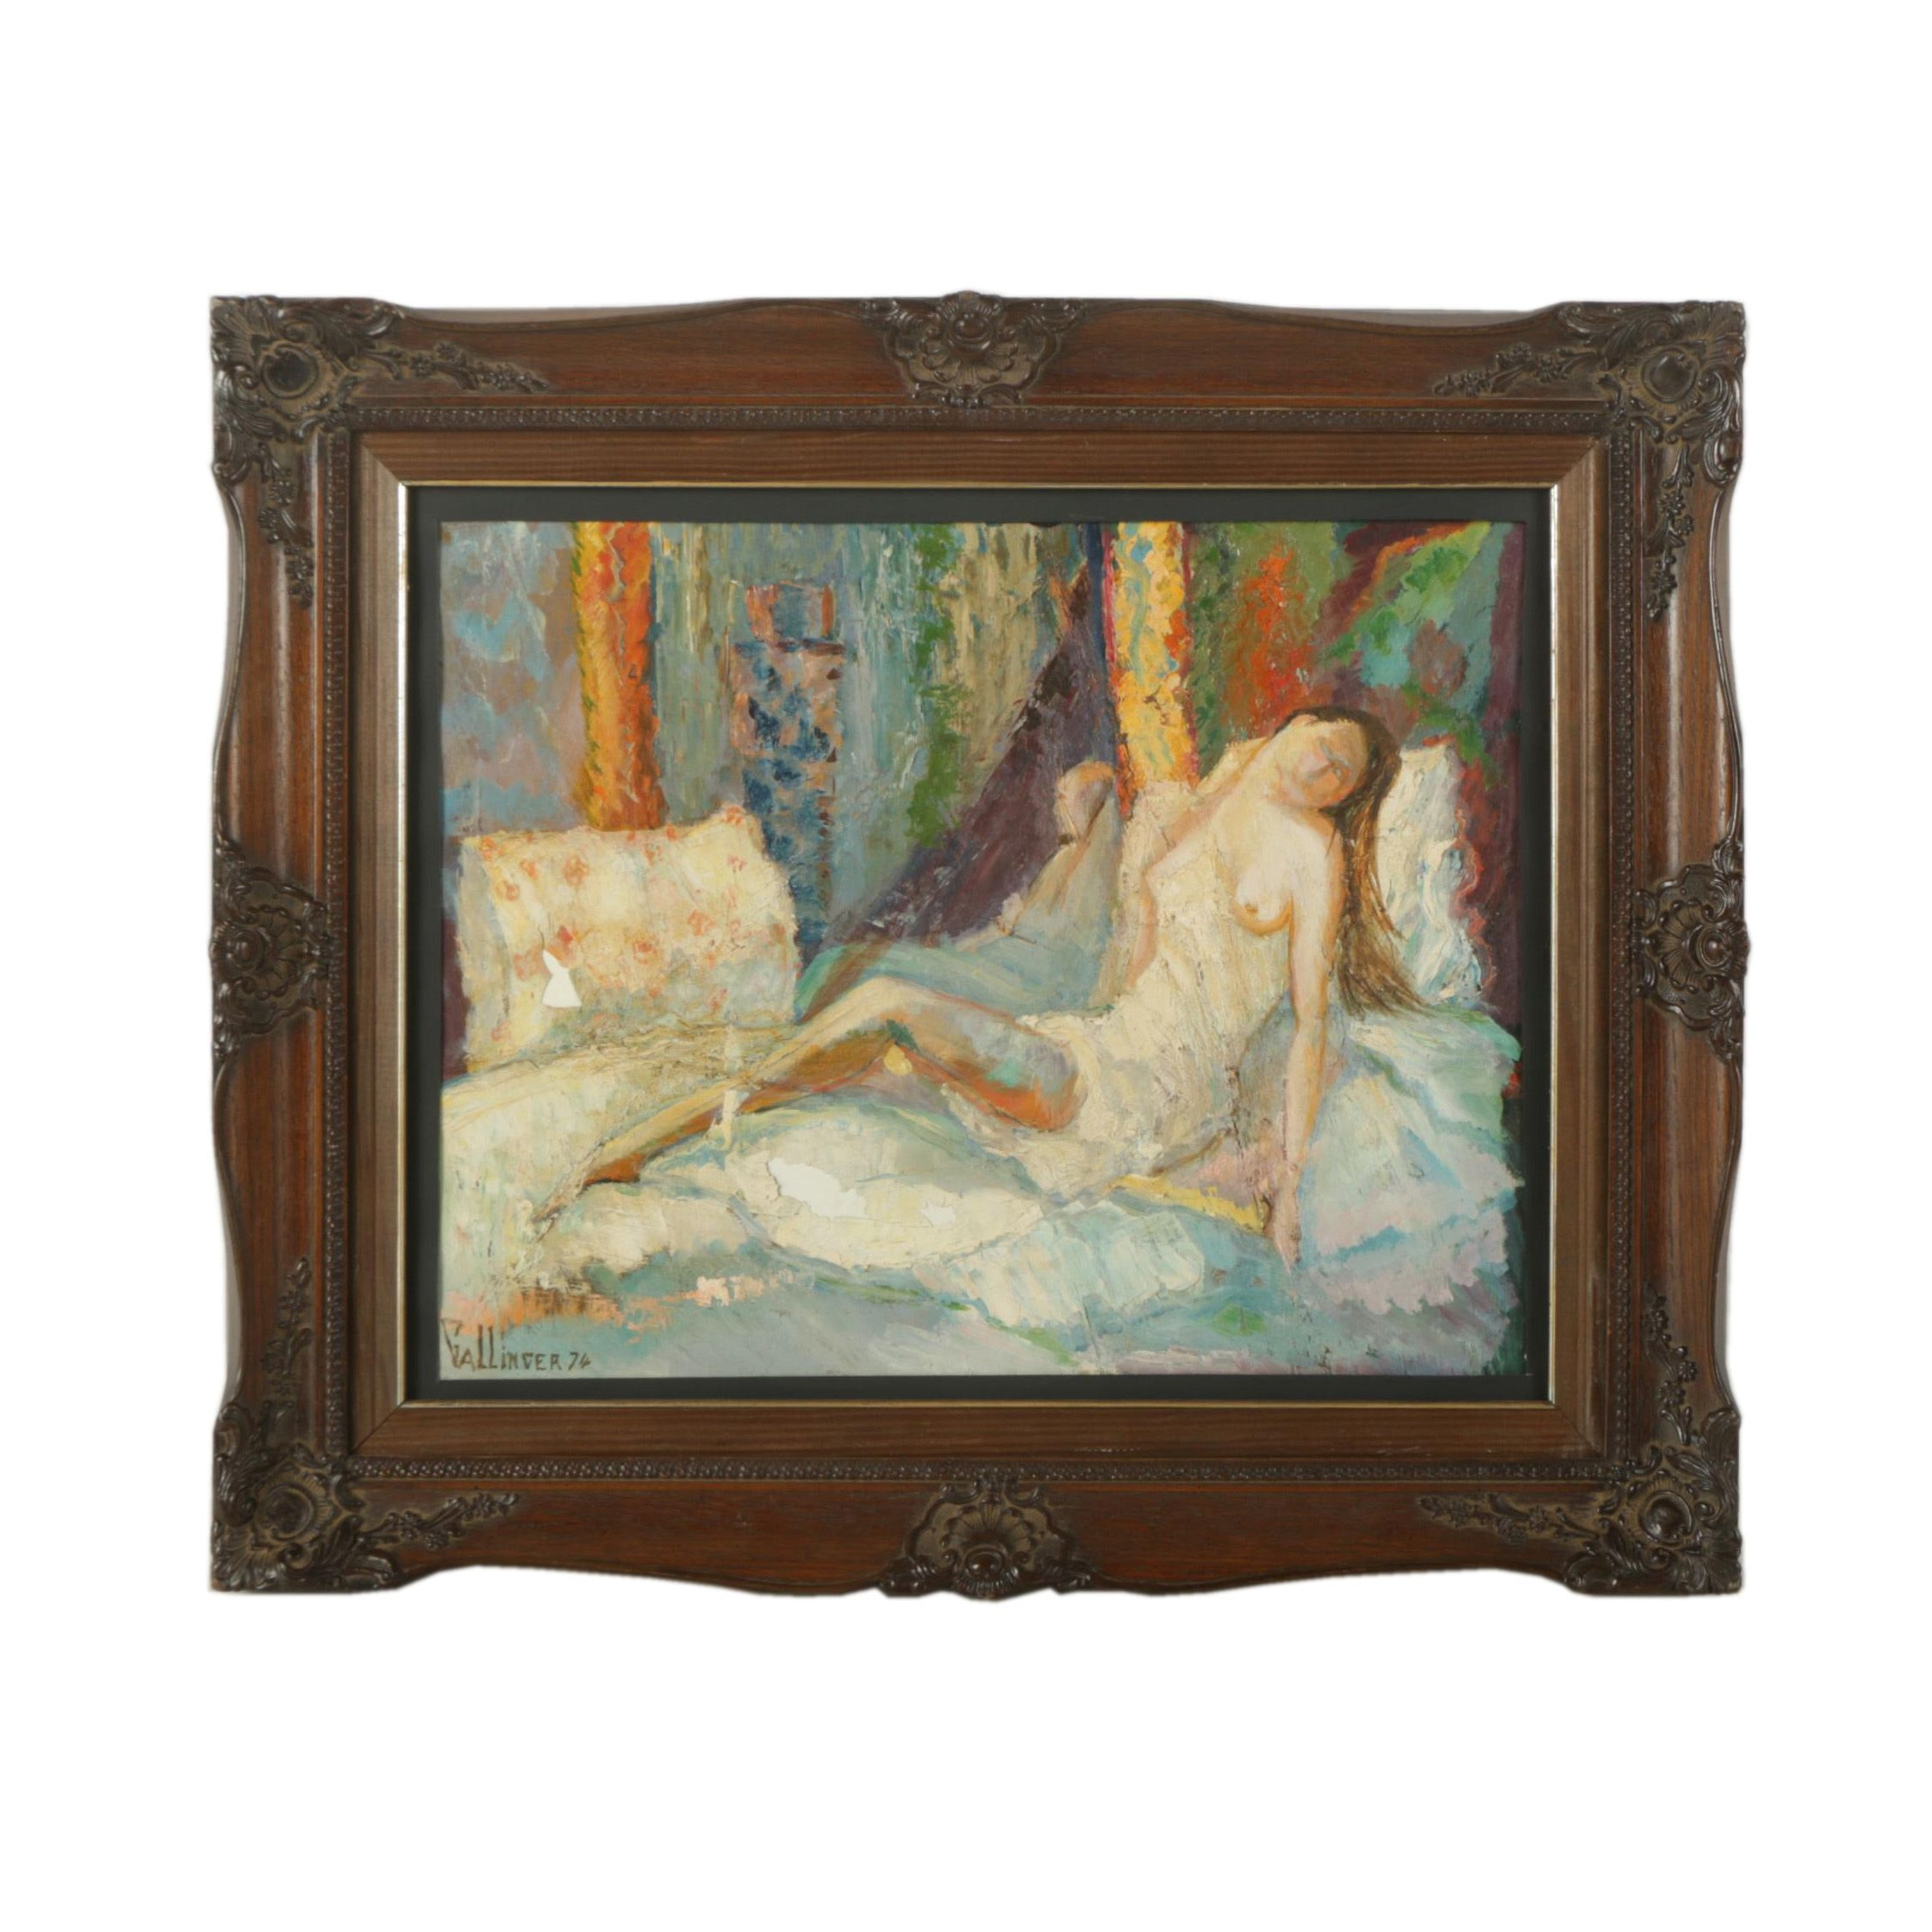 Gallinger Oil Painting on Board of a Semi Nude Figure